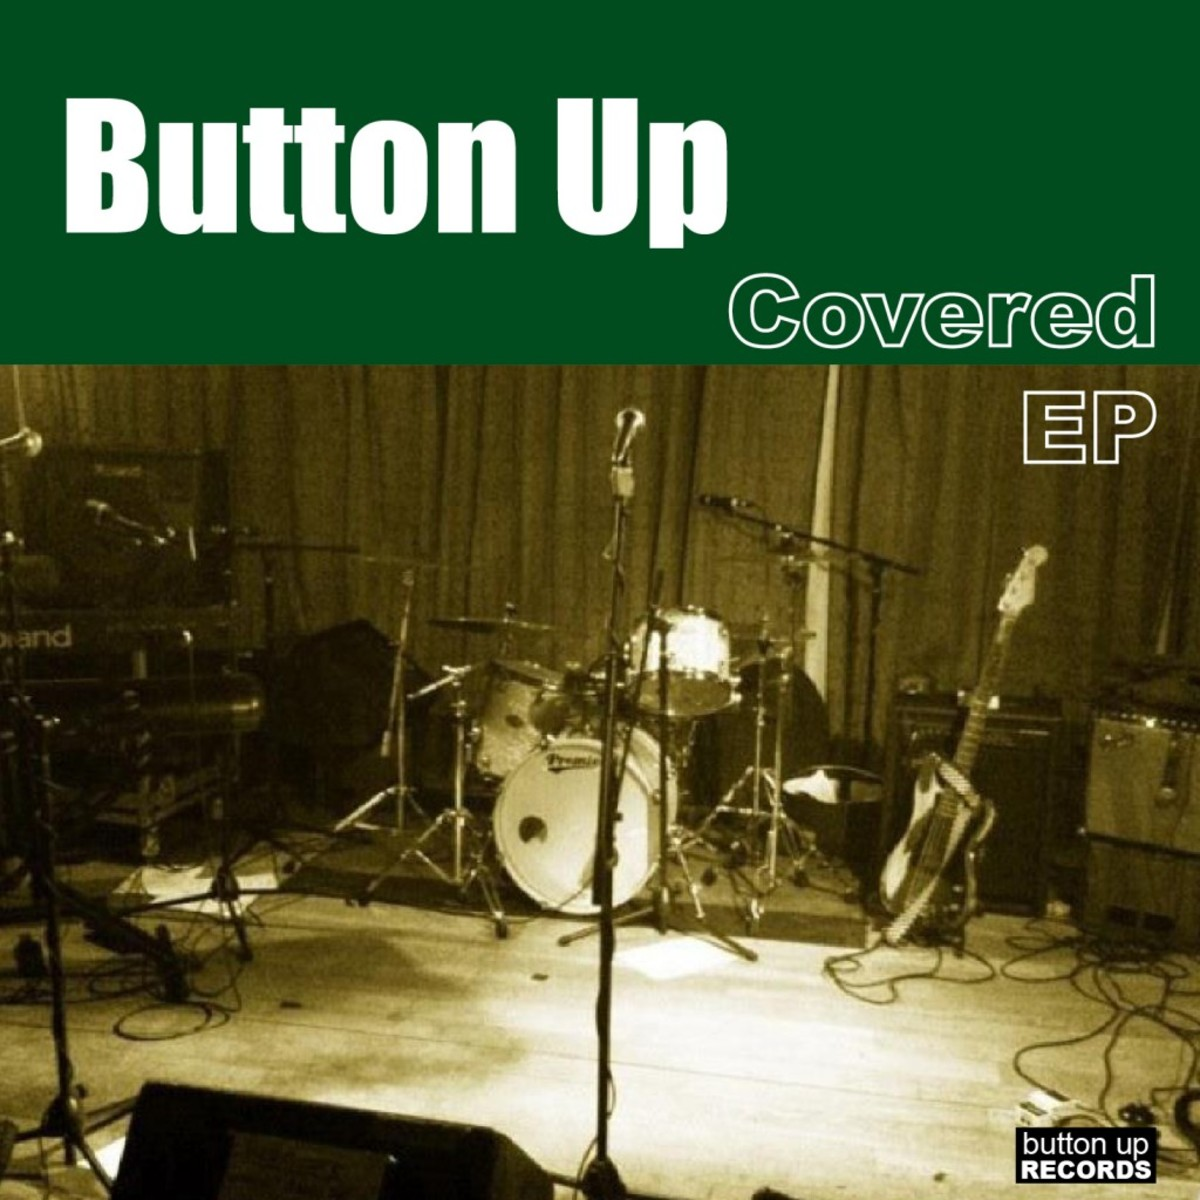 Button Up's Covered EP can be purchased from iTunes and Amazon.com in the United States.